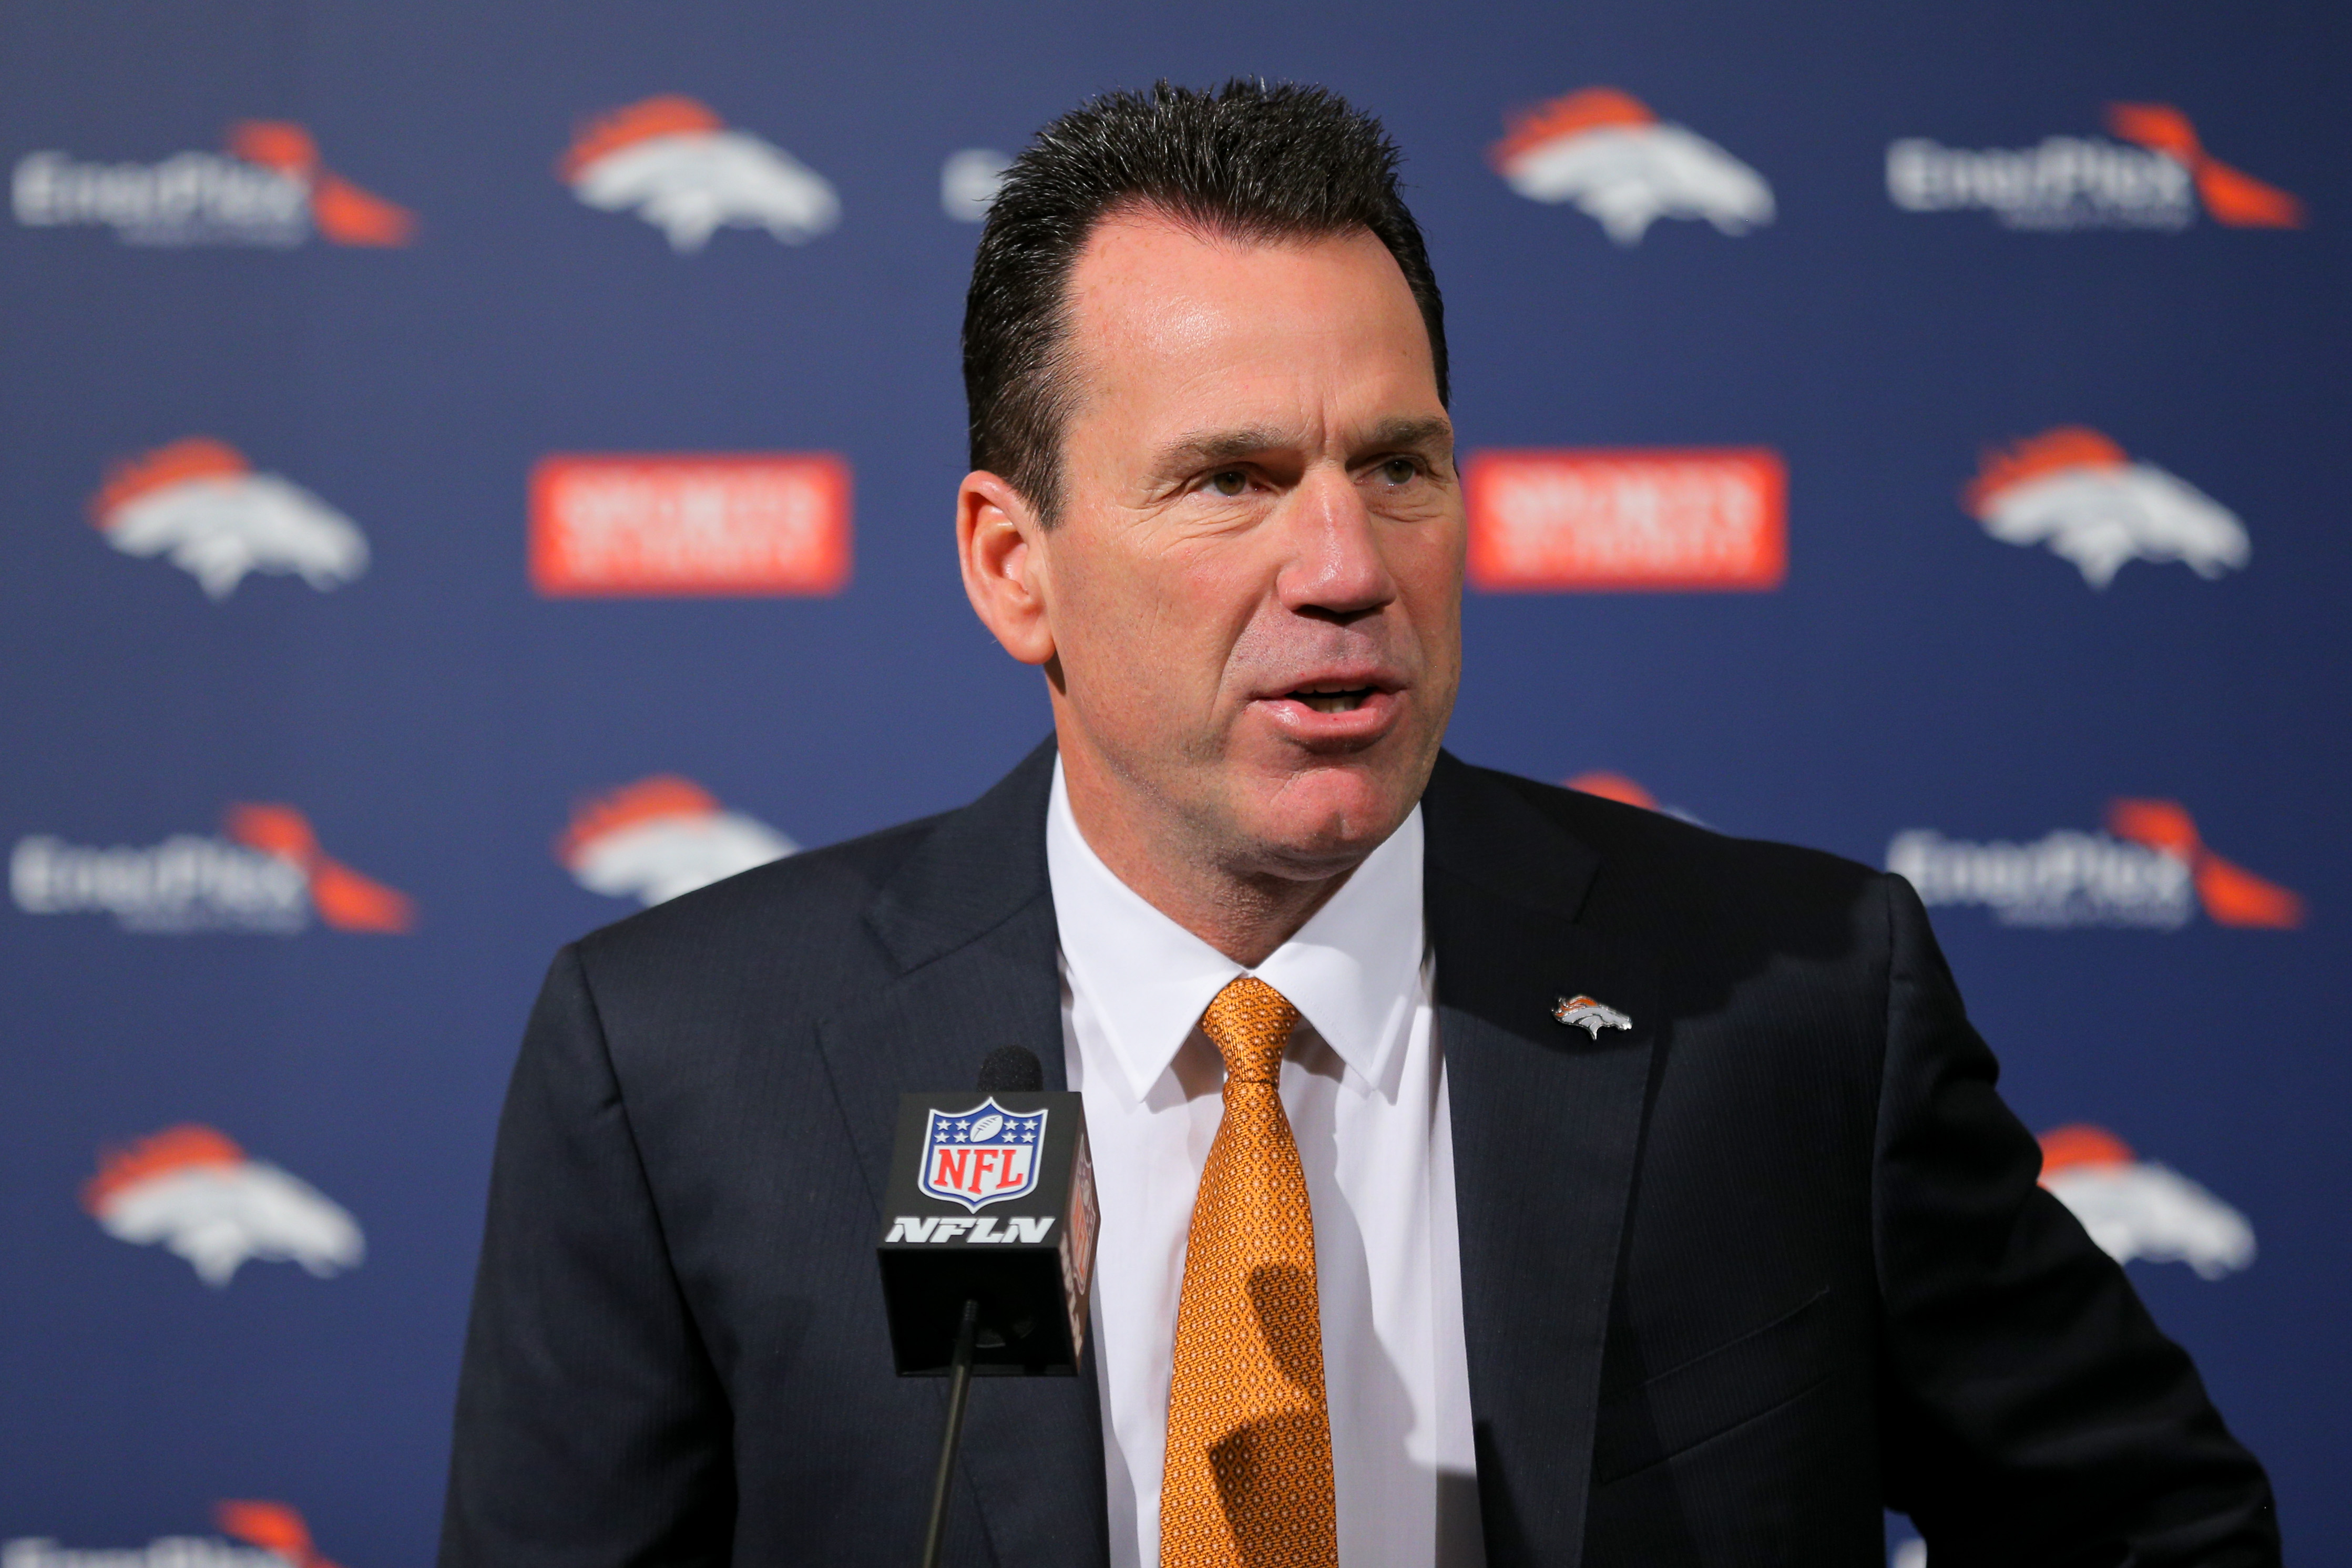 Head Coach Gary Kubiak of the Denver Broncos addresses the media during his introduction press conference at Dove Valley on January 20, 2015 in Englewood, Colorado. (Photo by Justin Edmonds/Getty Images)